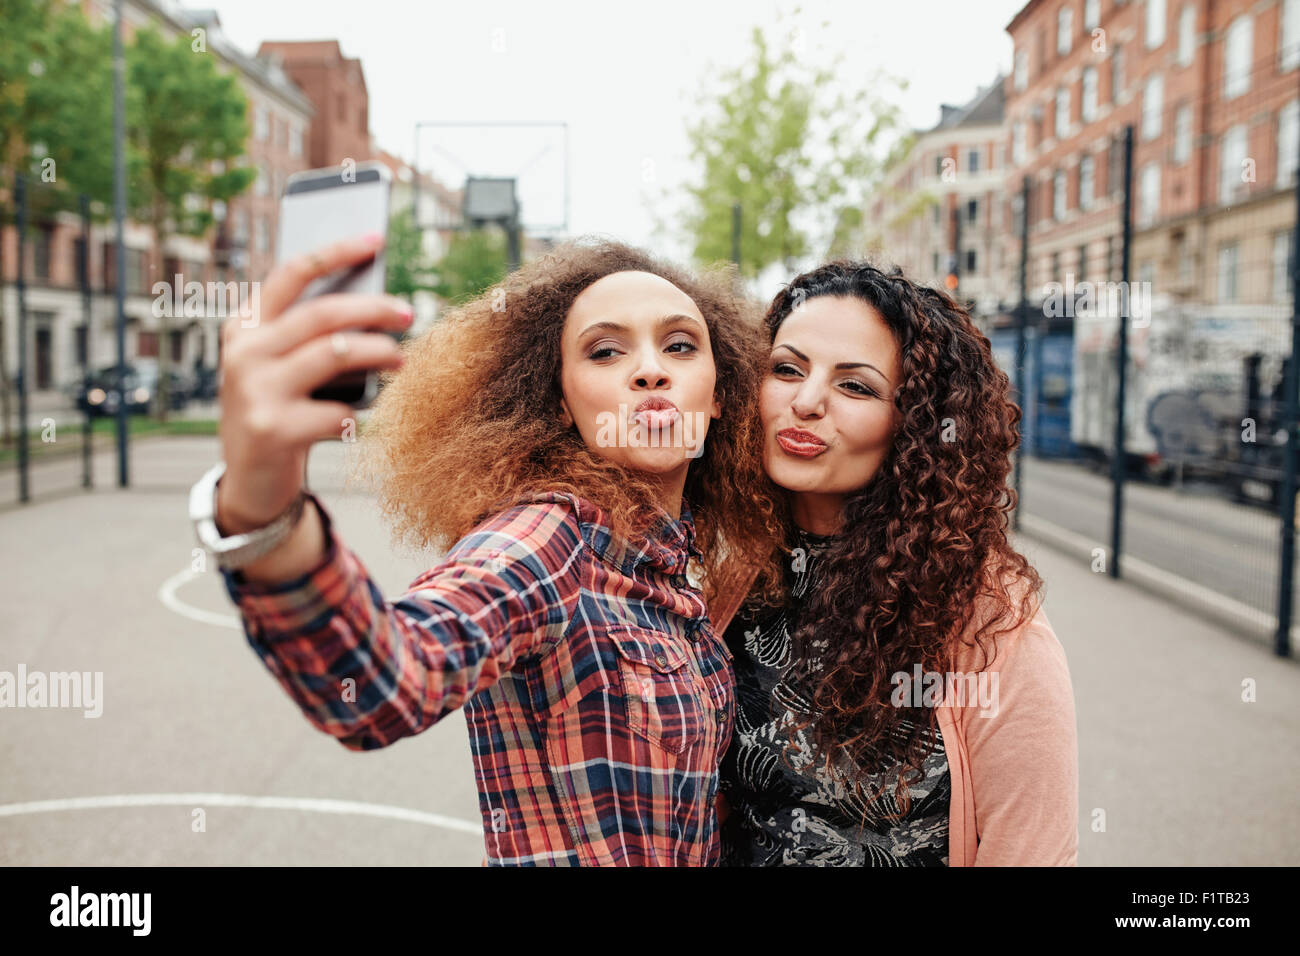 Happy young girls pout and pose for a selfie. Young girl friends taking a self portrait using mobile phone, outdoors - Stock Image